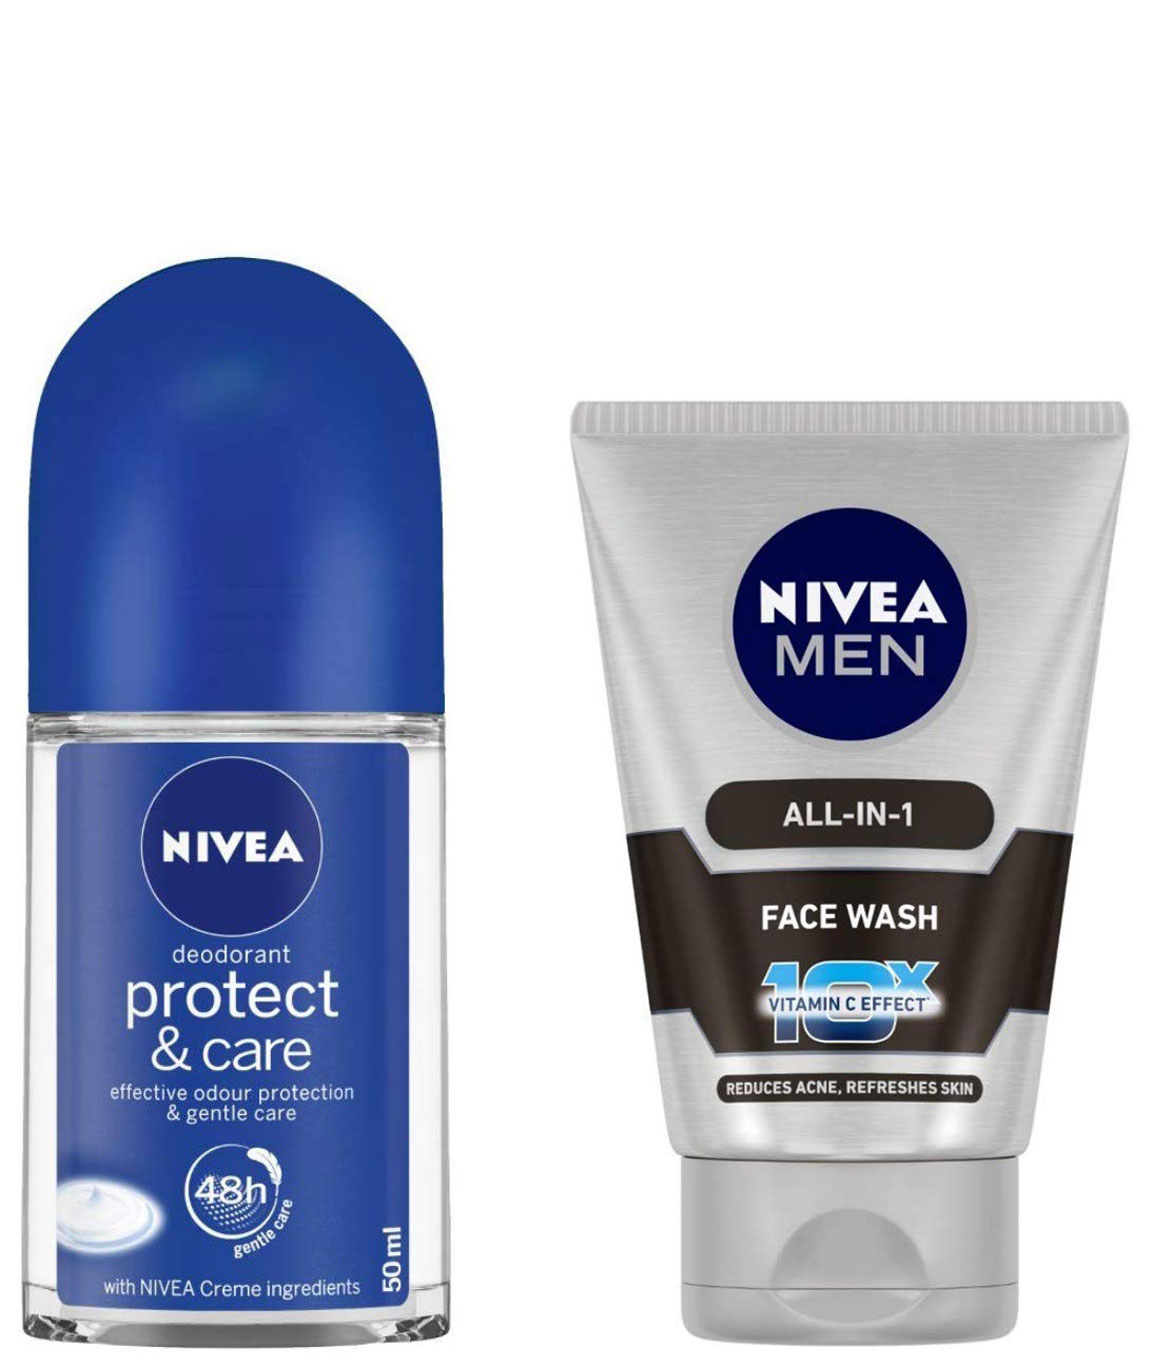 NIVEA Roll-on Deodorant, Protect and Care, 50ml and NIVEA MEN Face Wash, All-in-One, 100ml